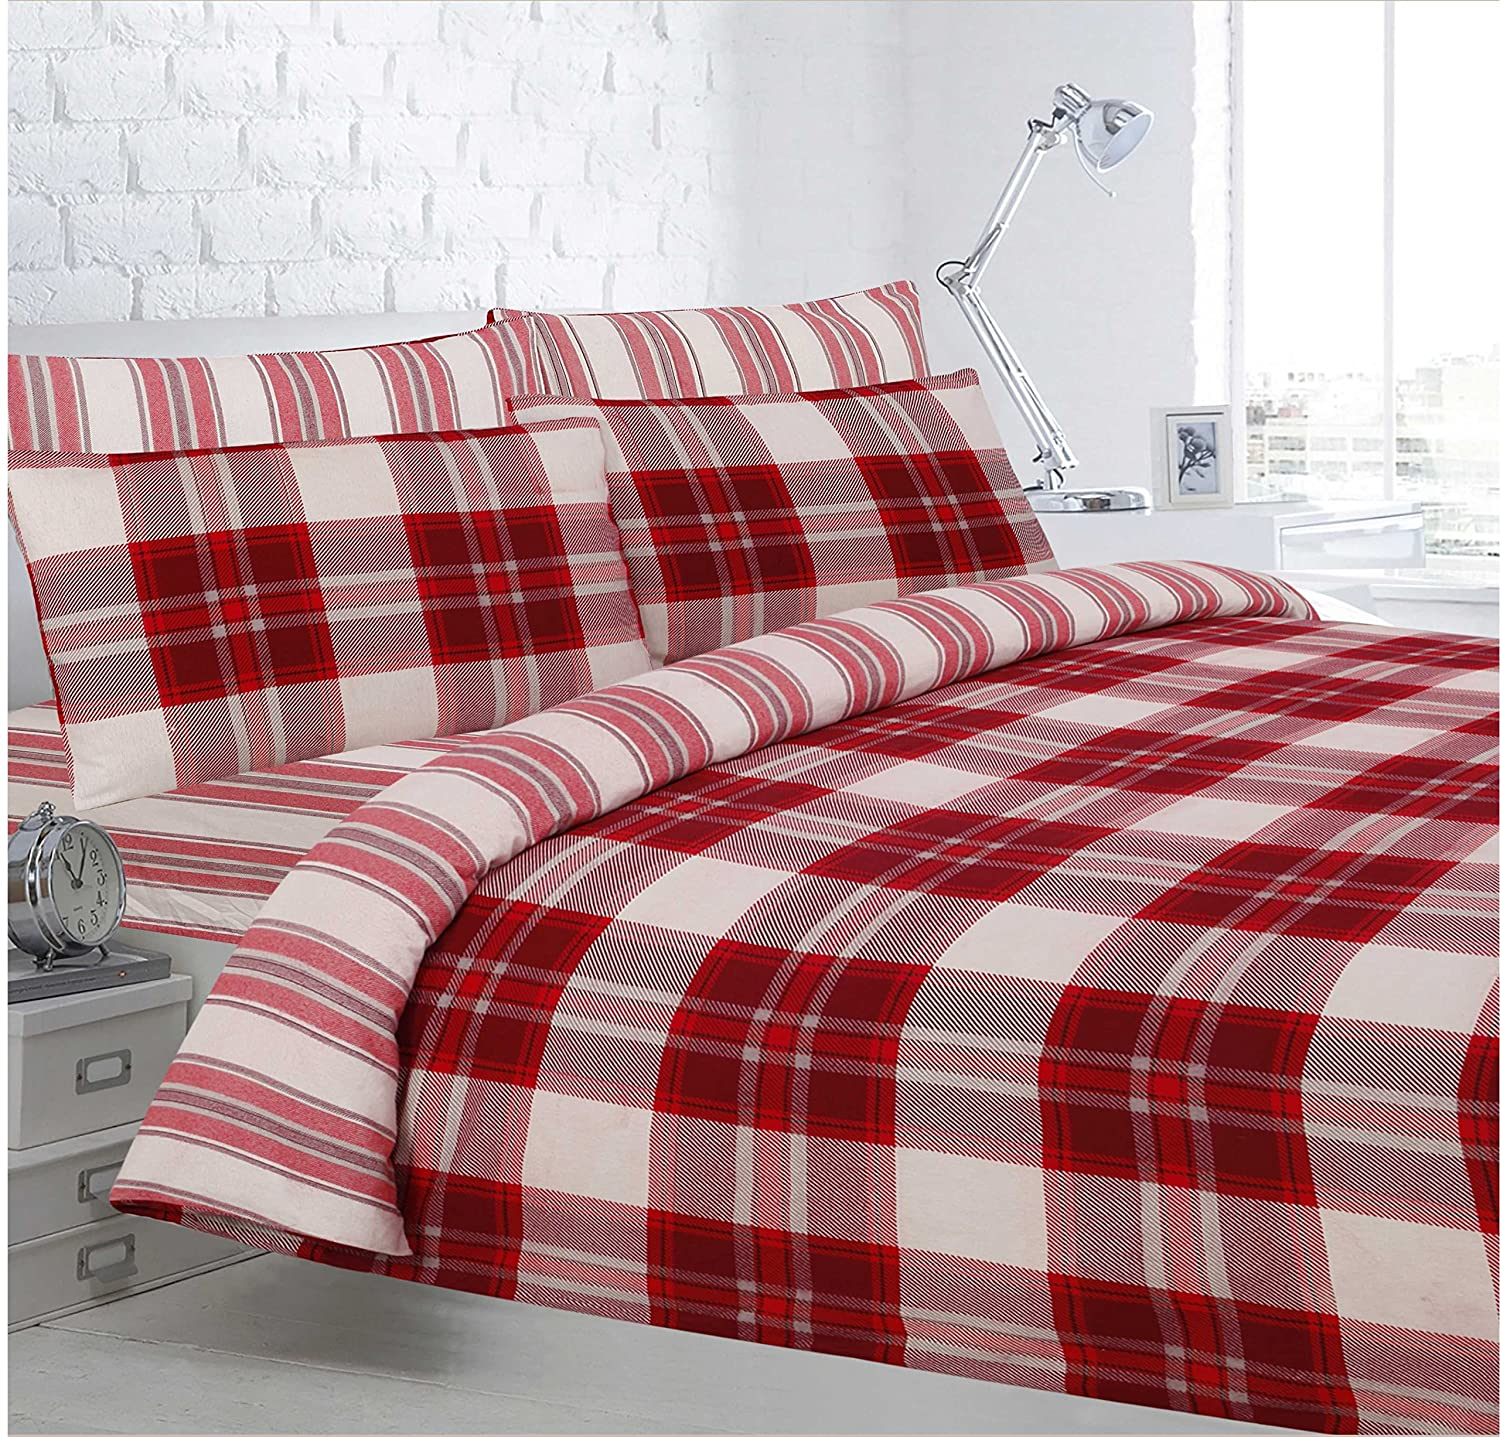 Velosso Home Bedding Store Soft Flannelette 100% Brushed Thermal Cotton Double Bedding Sheet Set Woodbridge Check Red